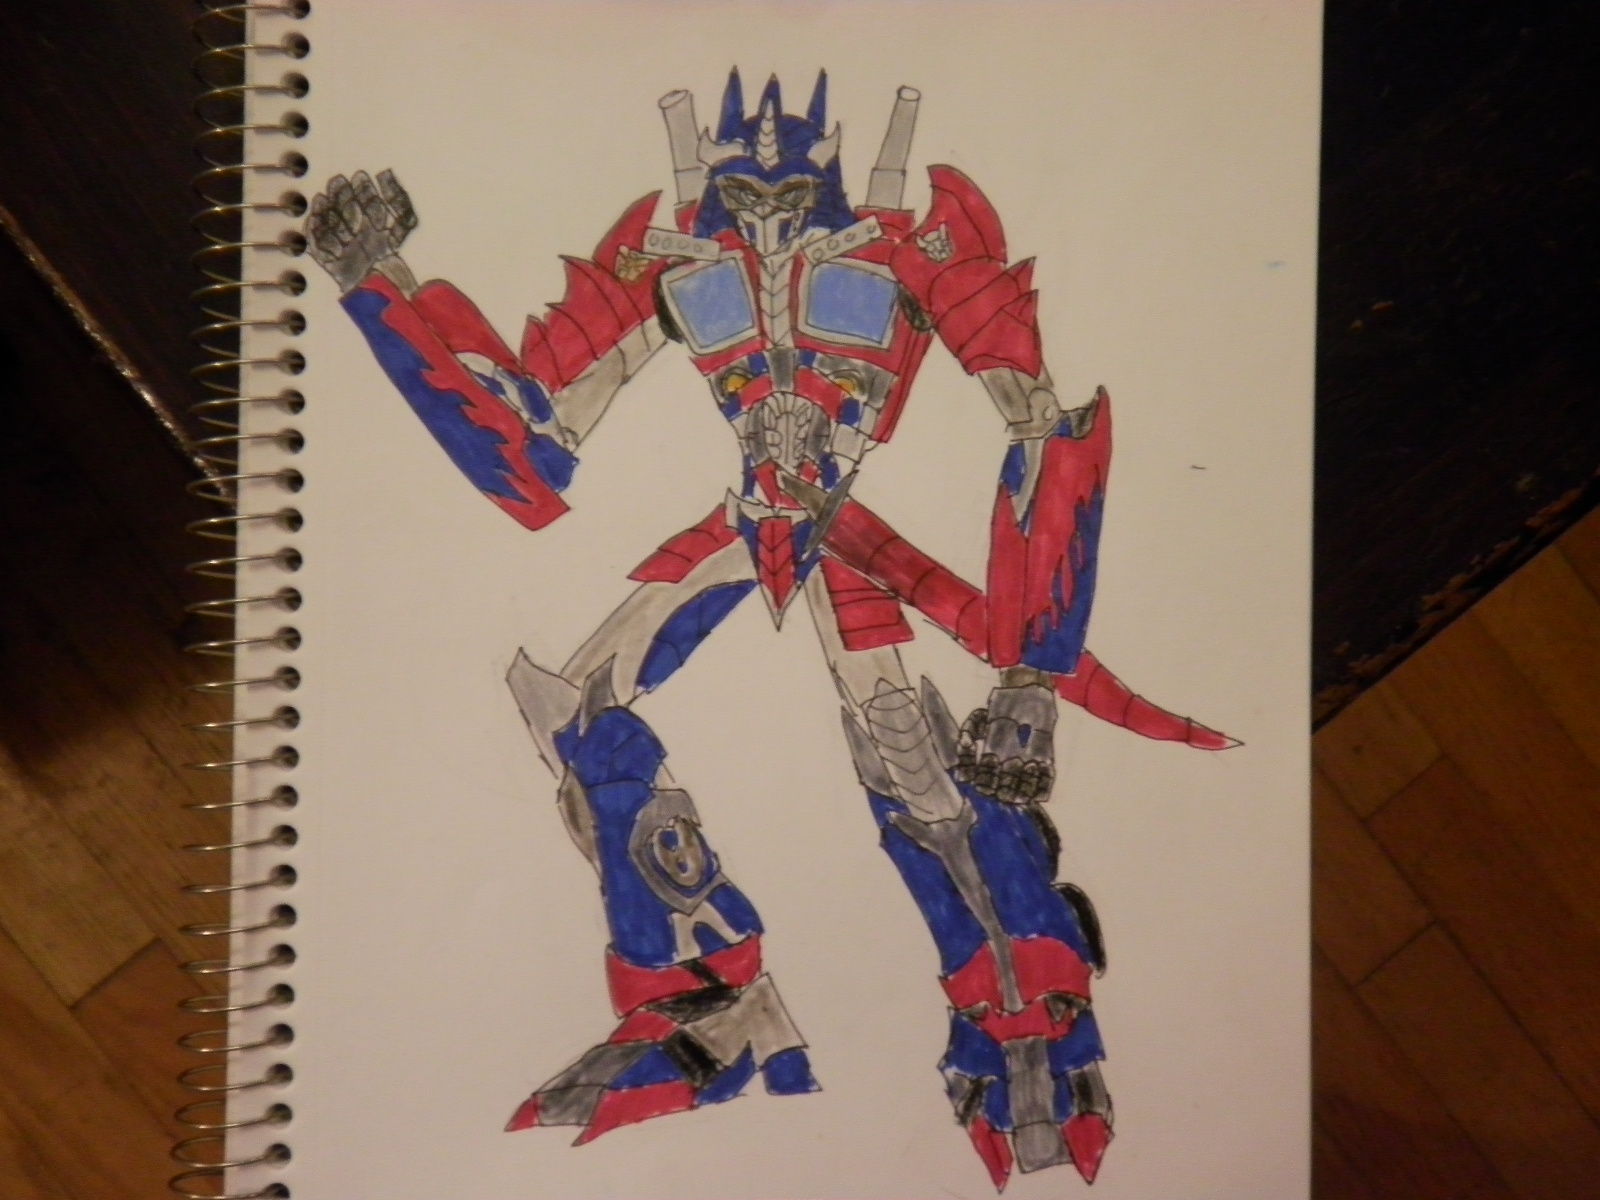 Transformers Matrix Offical character design thread.-sany2733.jpg